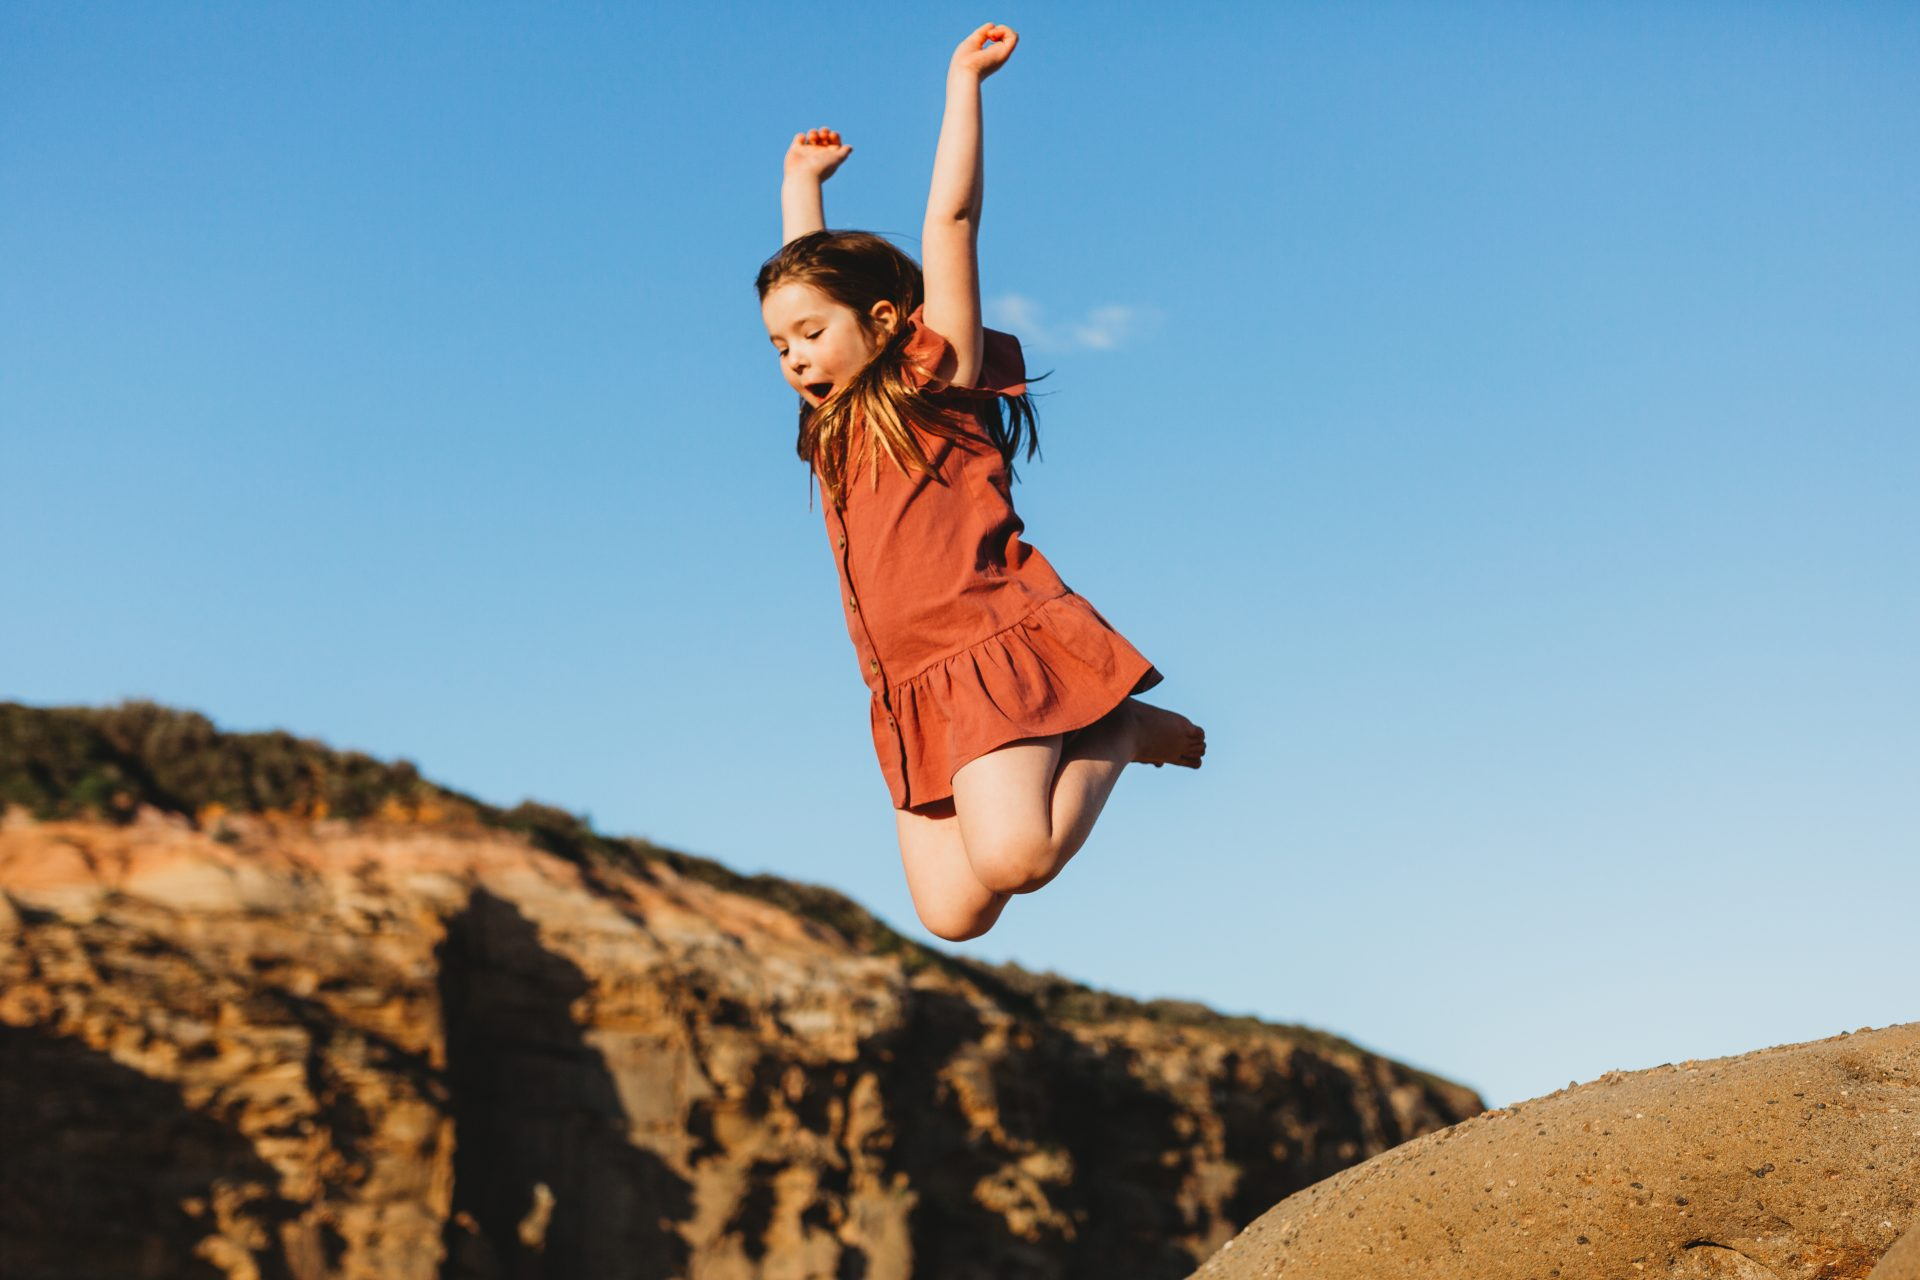 Young girl jumping off a large rock, with her arms up in the air